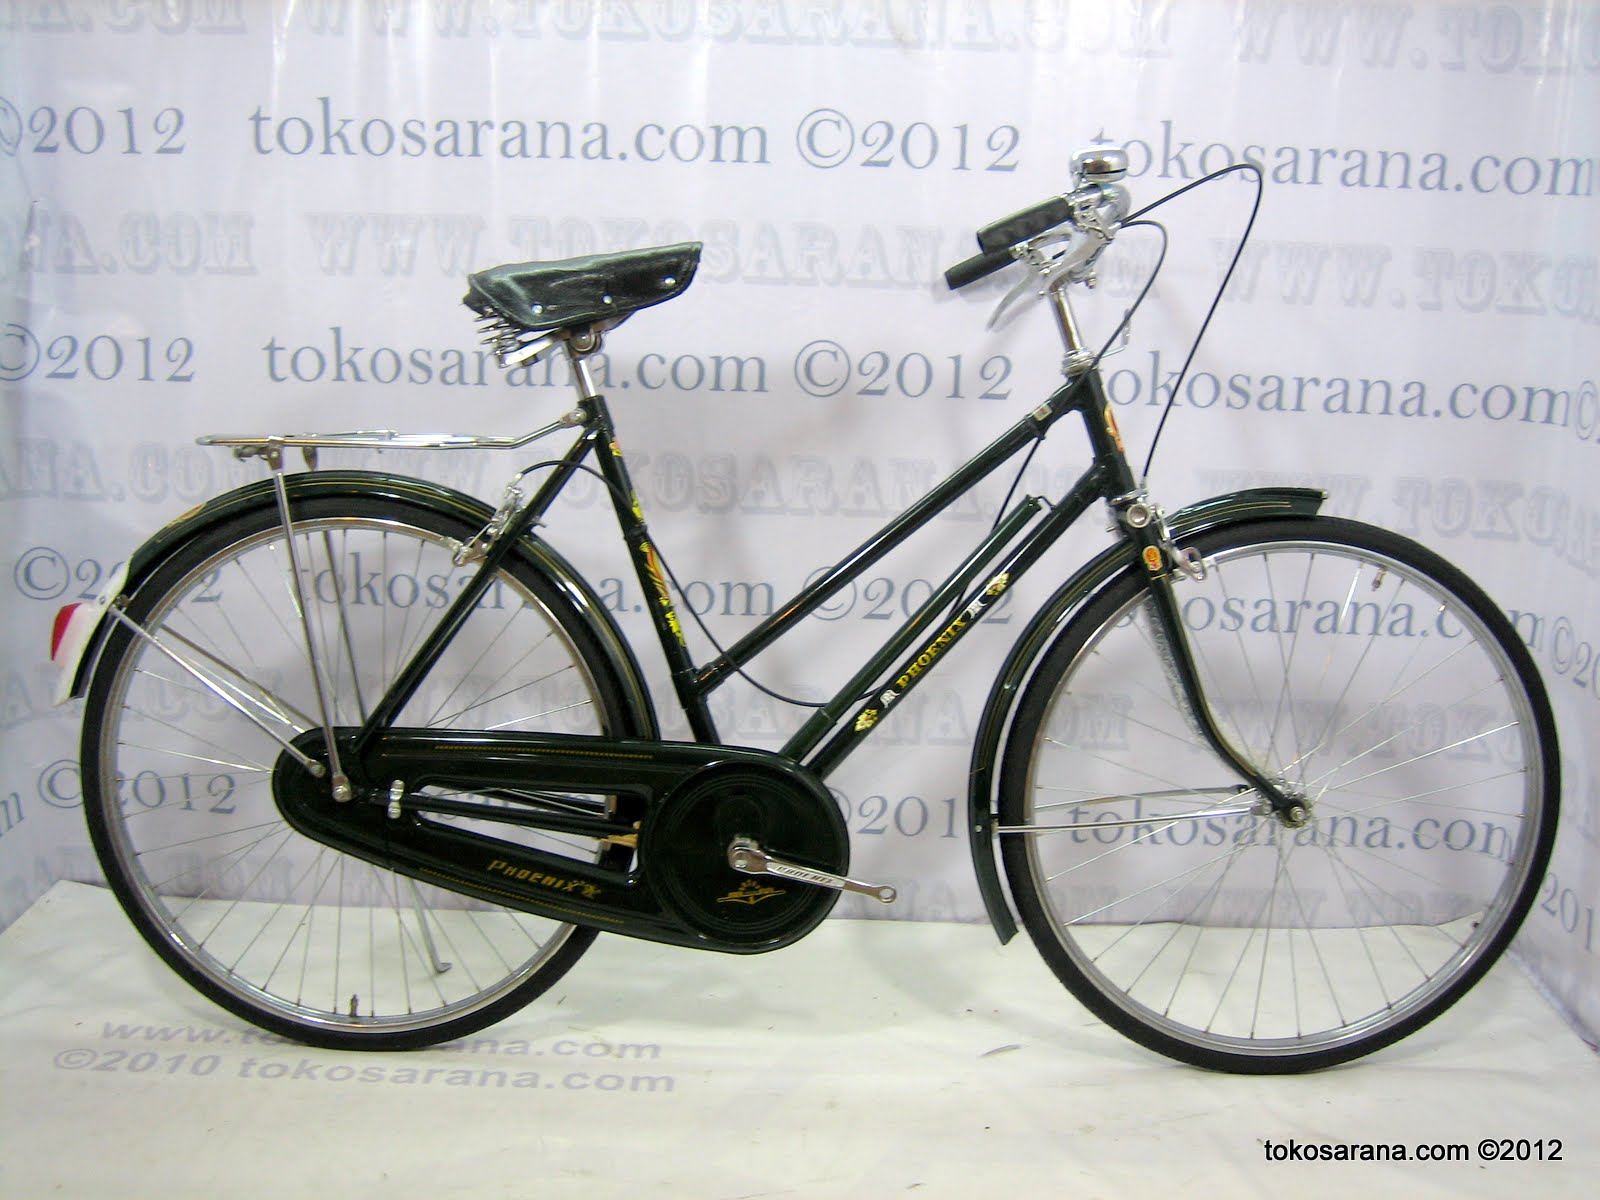 Tokosarana Mahasarana Sukses Heavy Duty Bike Phoenix Spl65 Light Roadster For Ladies 26 Inci